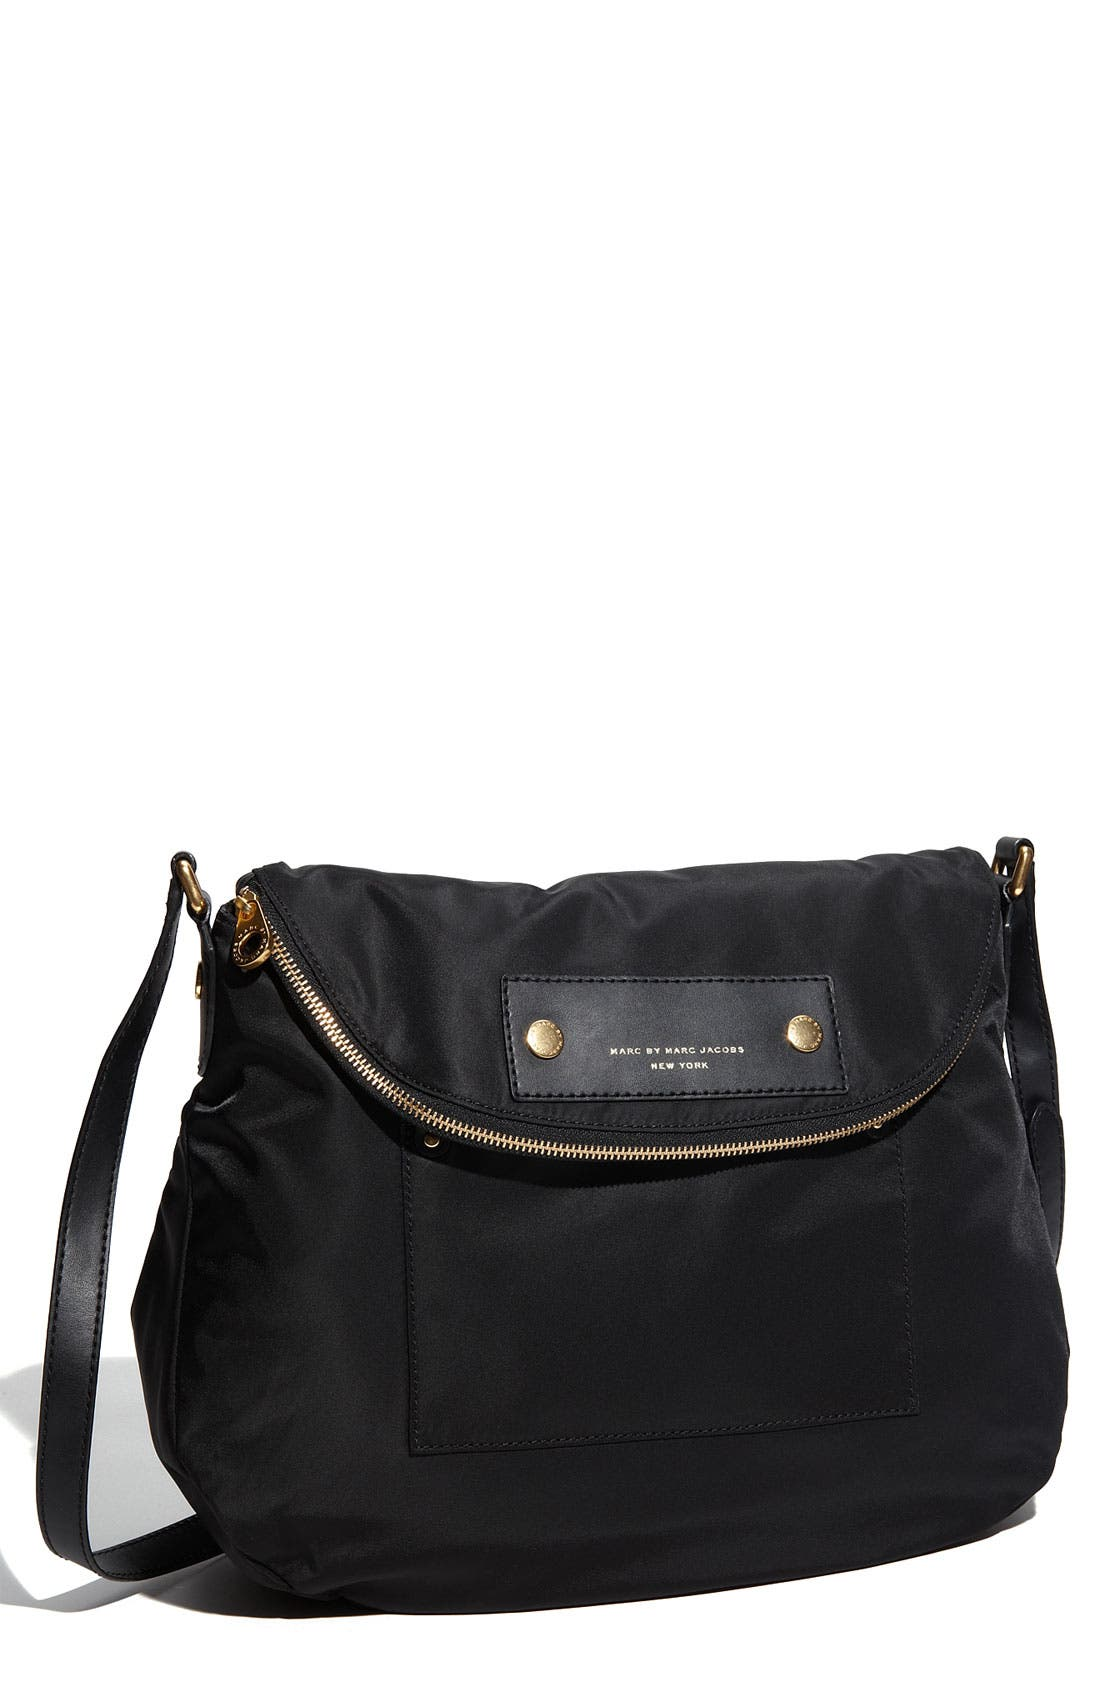 Alternate Image 1 Selected - MARC BY MARC JACOBS 'Preppy Nylon Sasha' Crossbody Bag